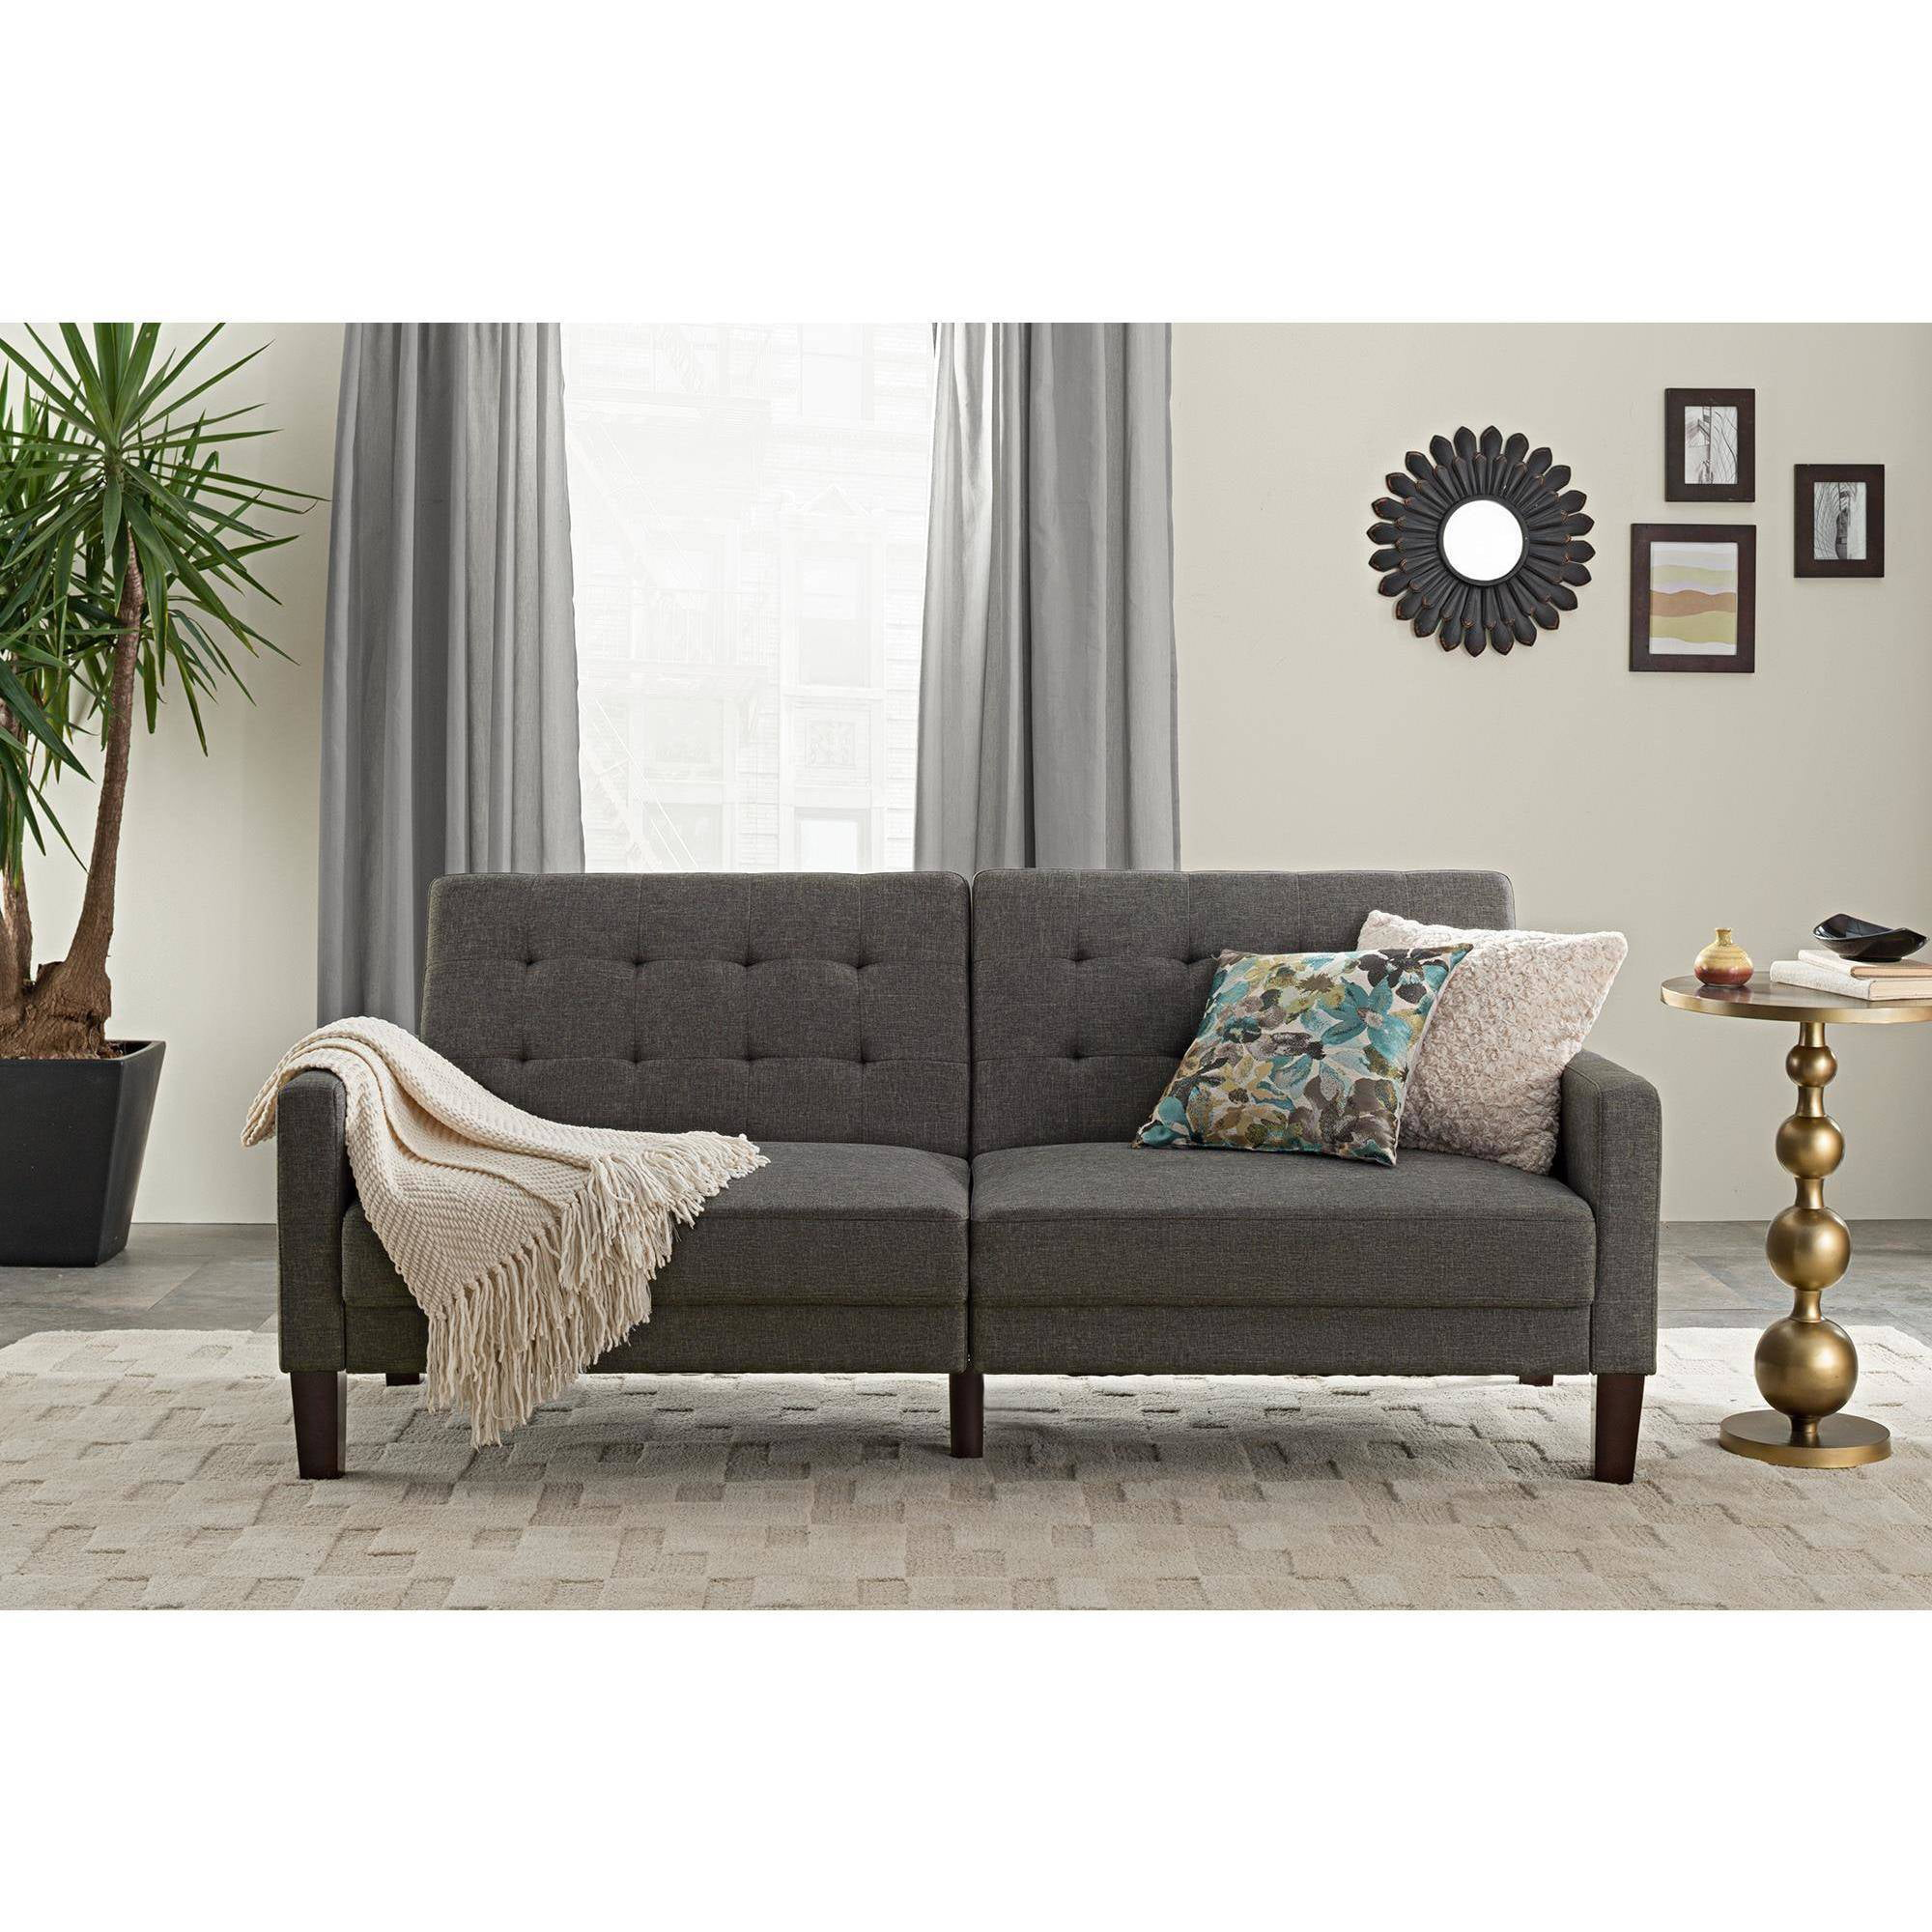 better homes and gardens porter futon multiple colors walmartcom - Futon Sofa Beds